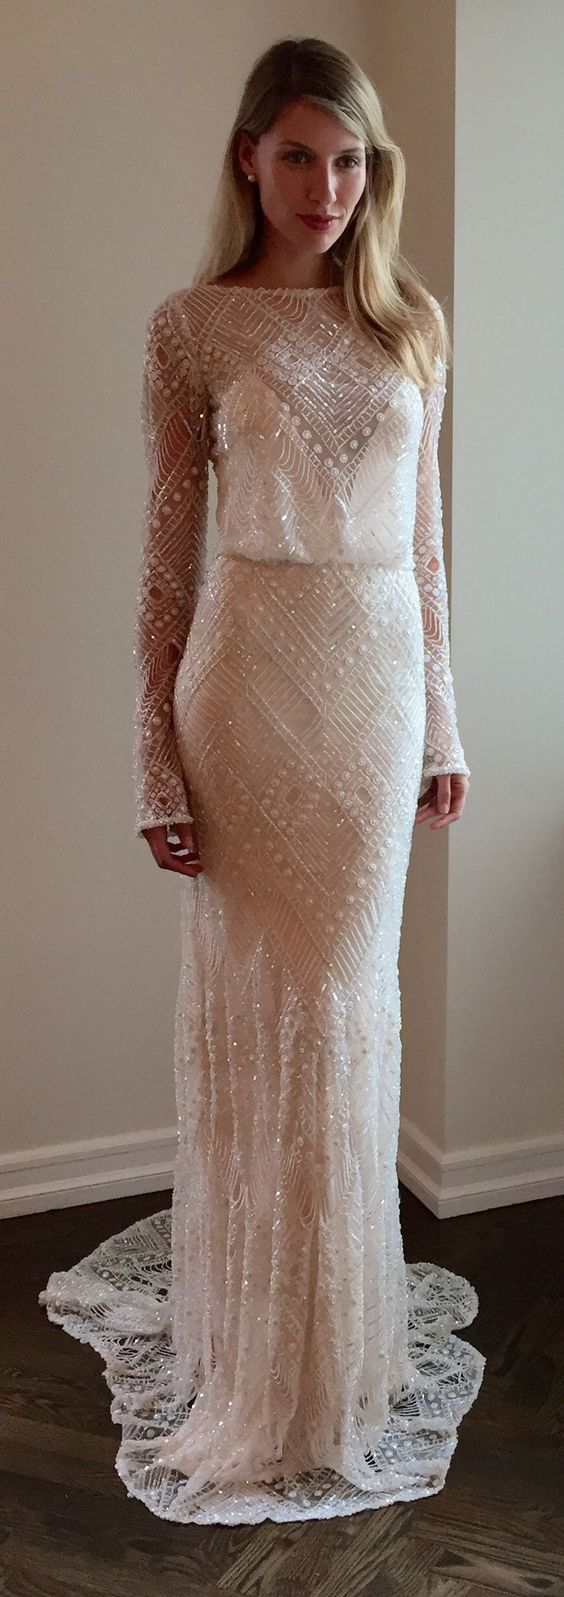 cool #BERTA Beauty from the NY Bridal Fashion Week ♥... by http://www.newfashiontrends.space/bridal-fashion/berta-beauty-from-the-ny-bridal-fashion-week-%e2%99%a5/